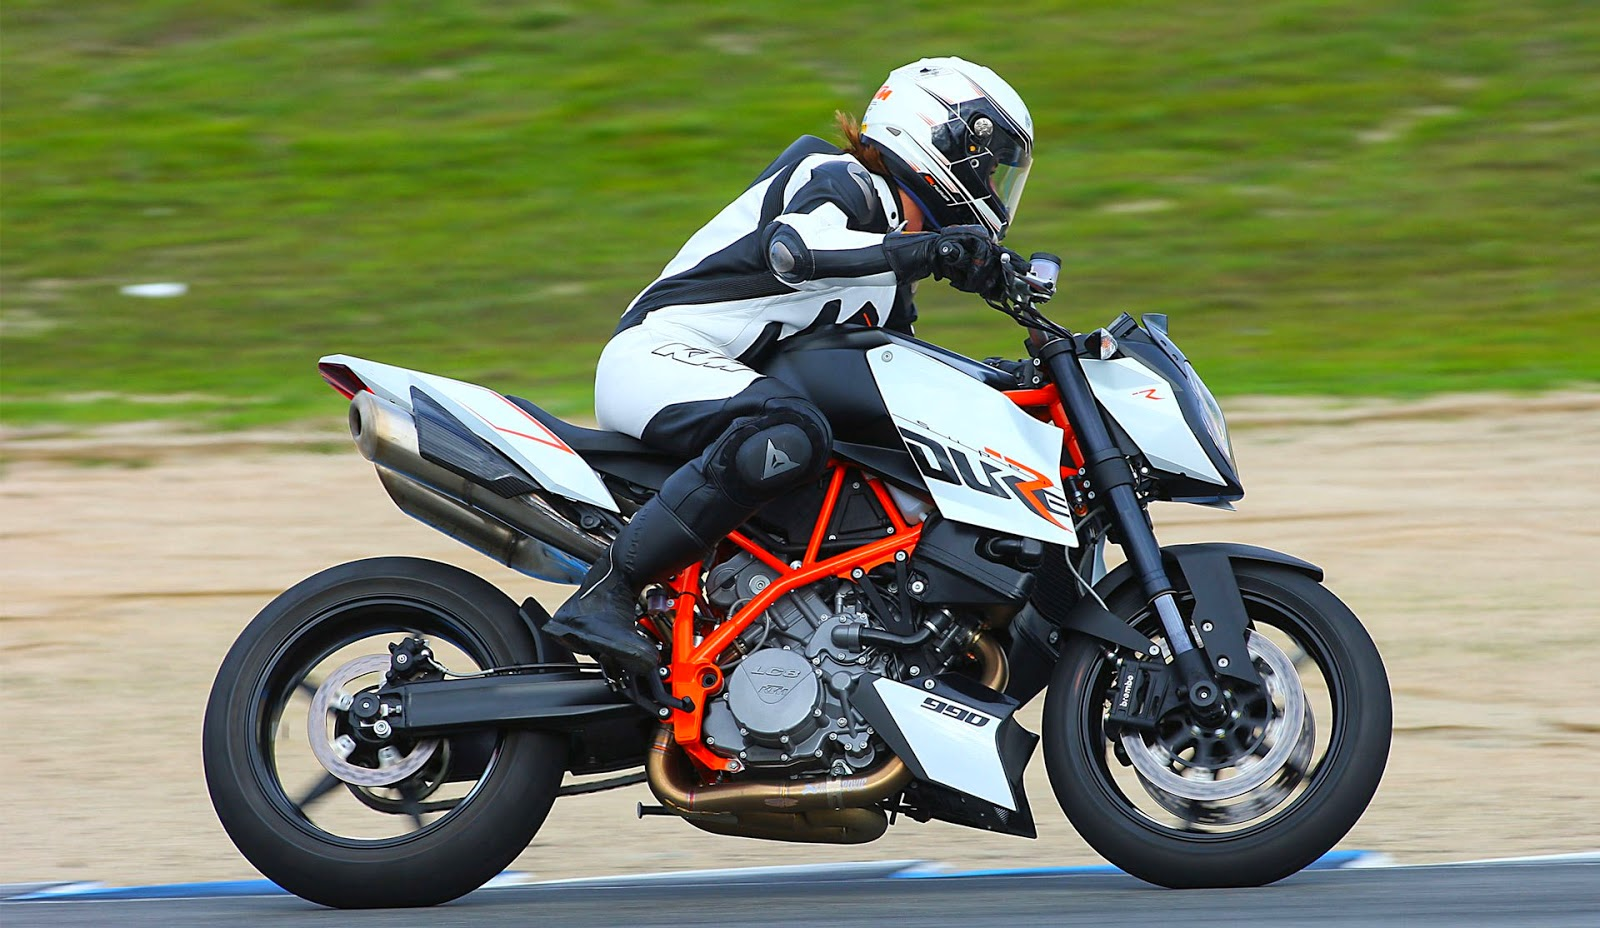 KTM 990 Super Duke R Bikes Price